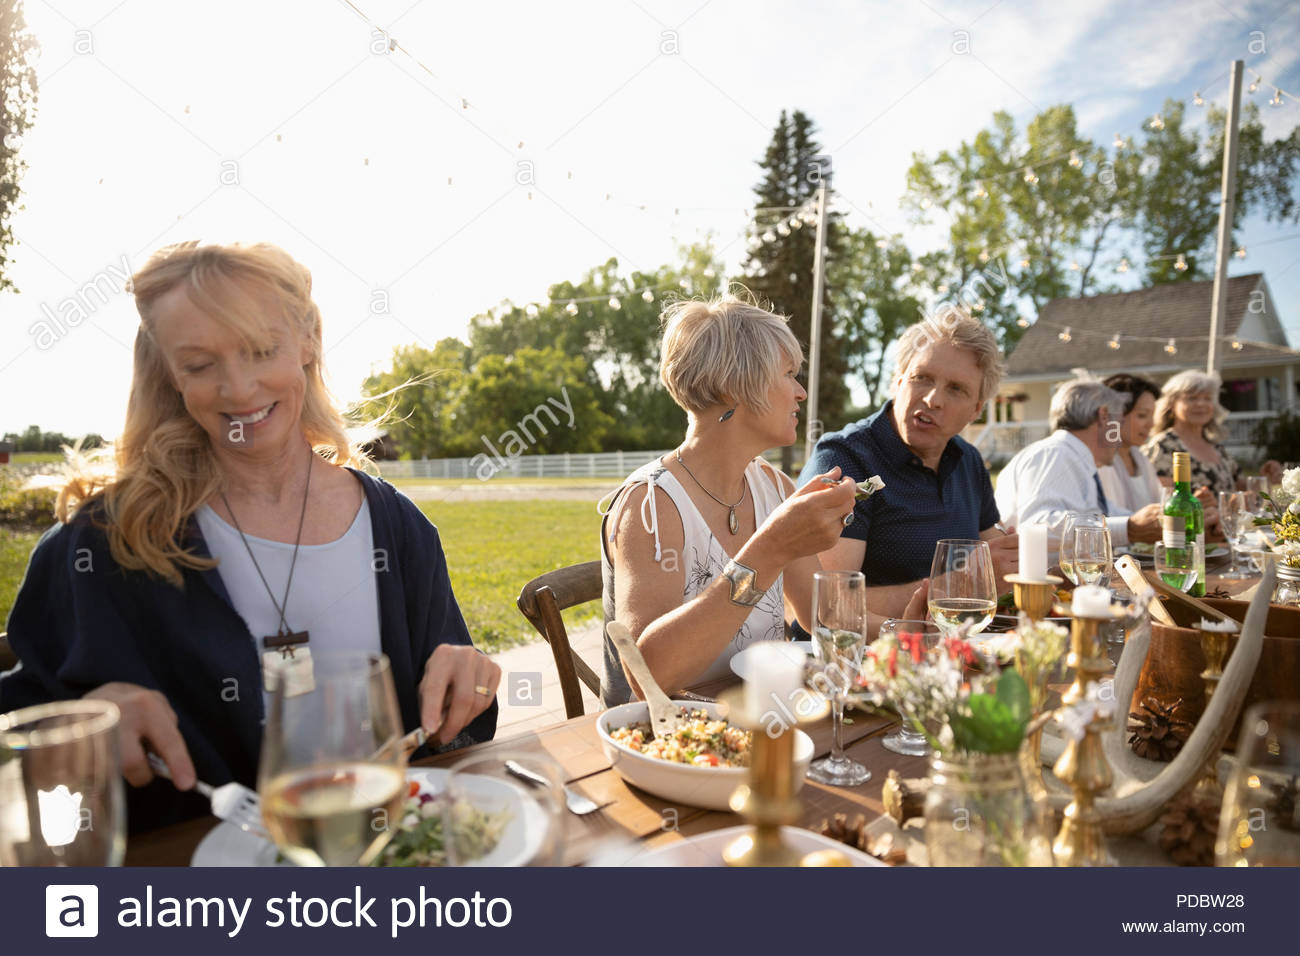 Friends eating and drinking at sunny garden party lunch - Stock Image